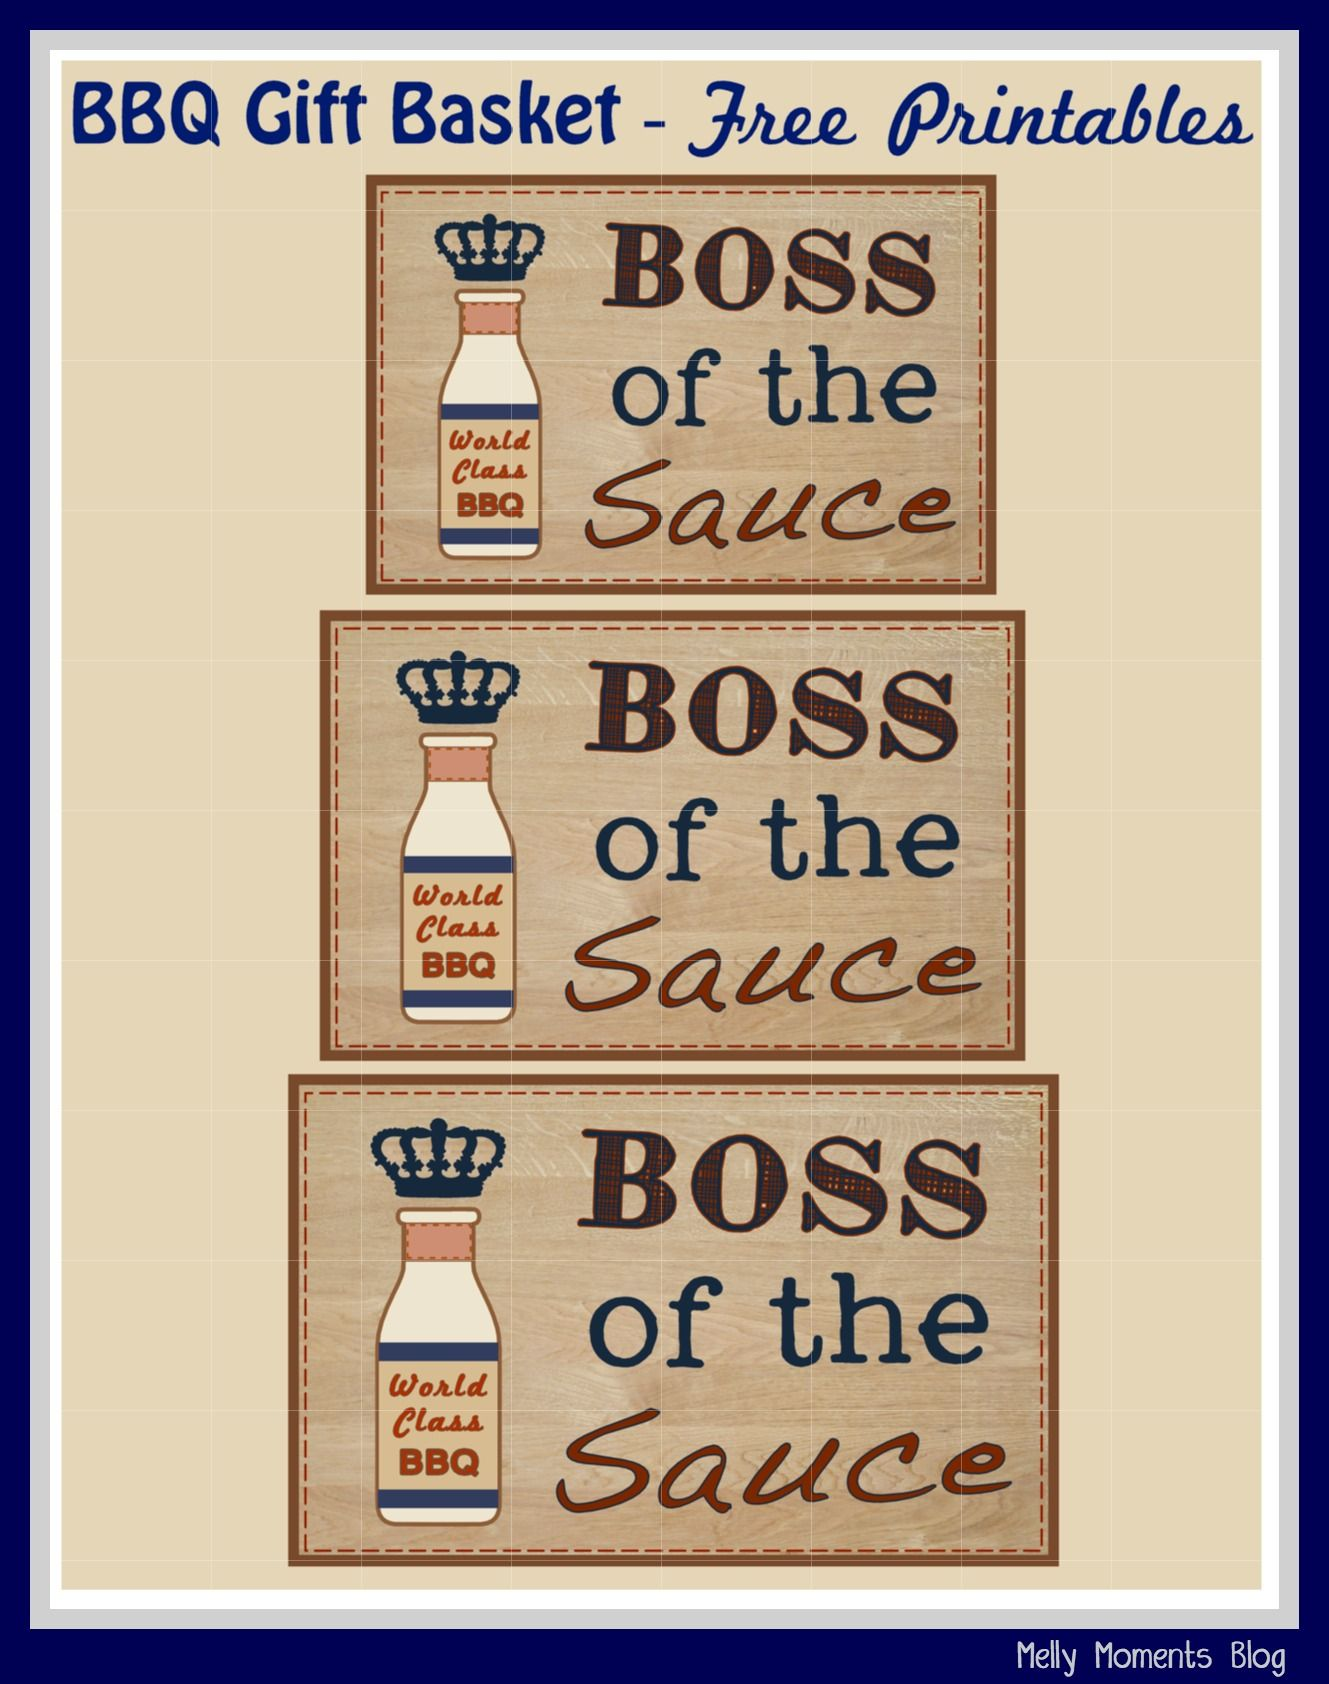 Boss of the sauce free fathers day gift tags and labels perfect boss of the sauce free fathers day gift tags and labels perfect to use with a bbqgrill themed basket that special man in your life husband negle Image collections